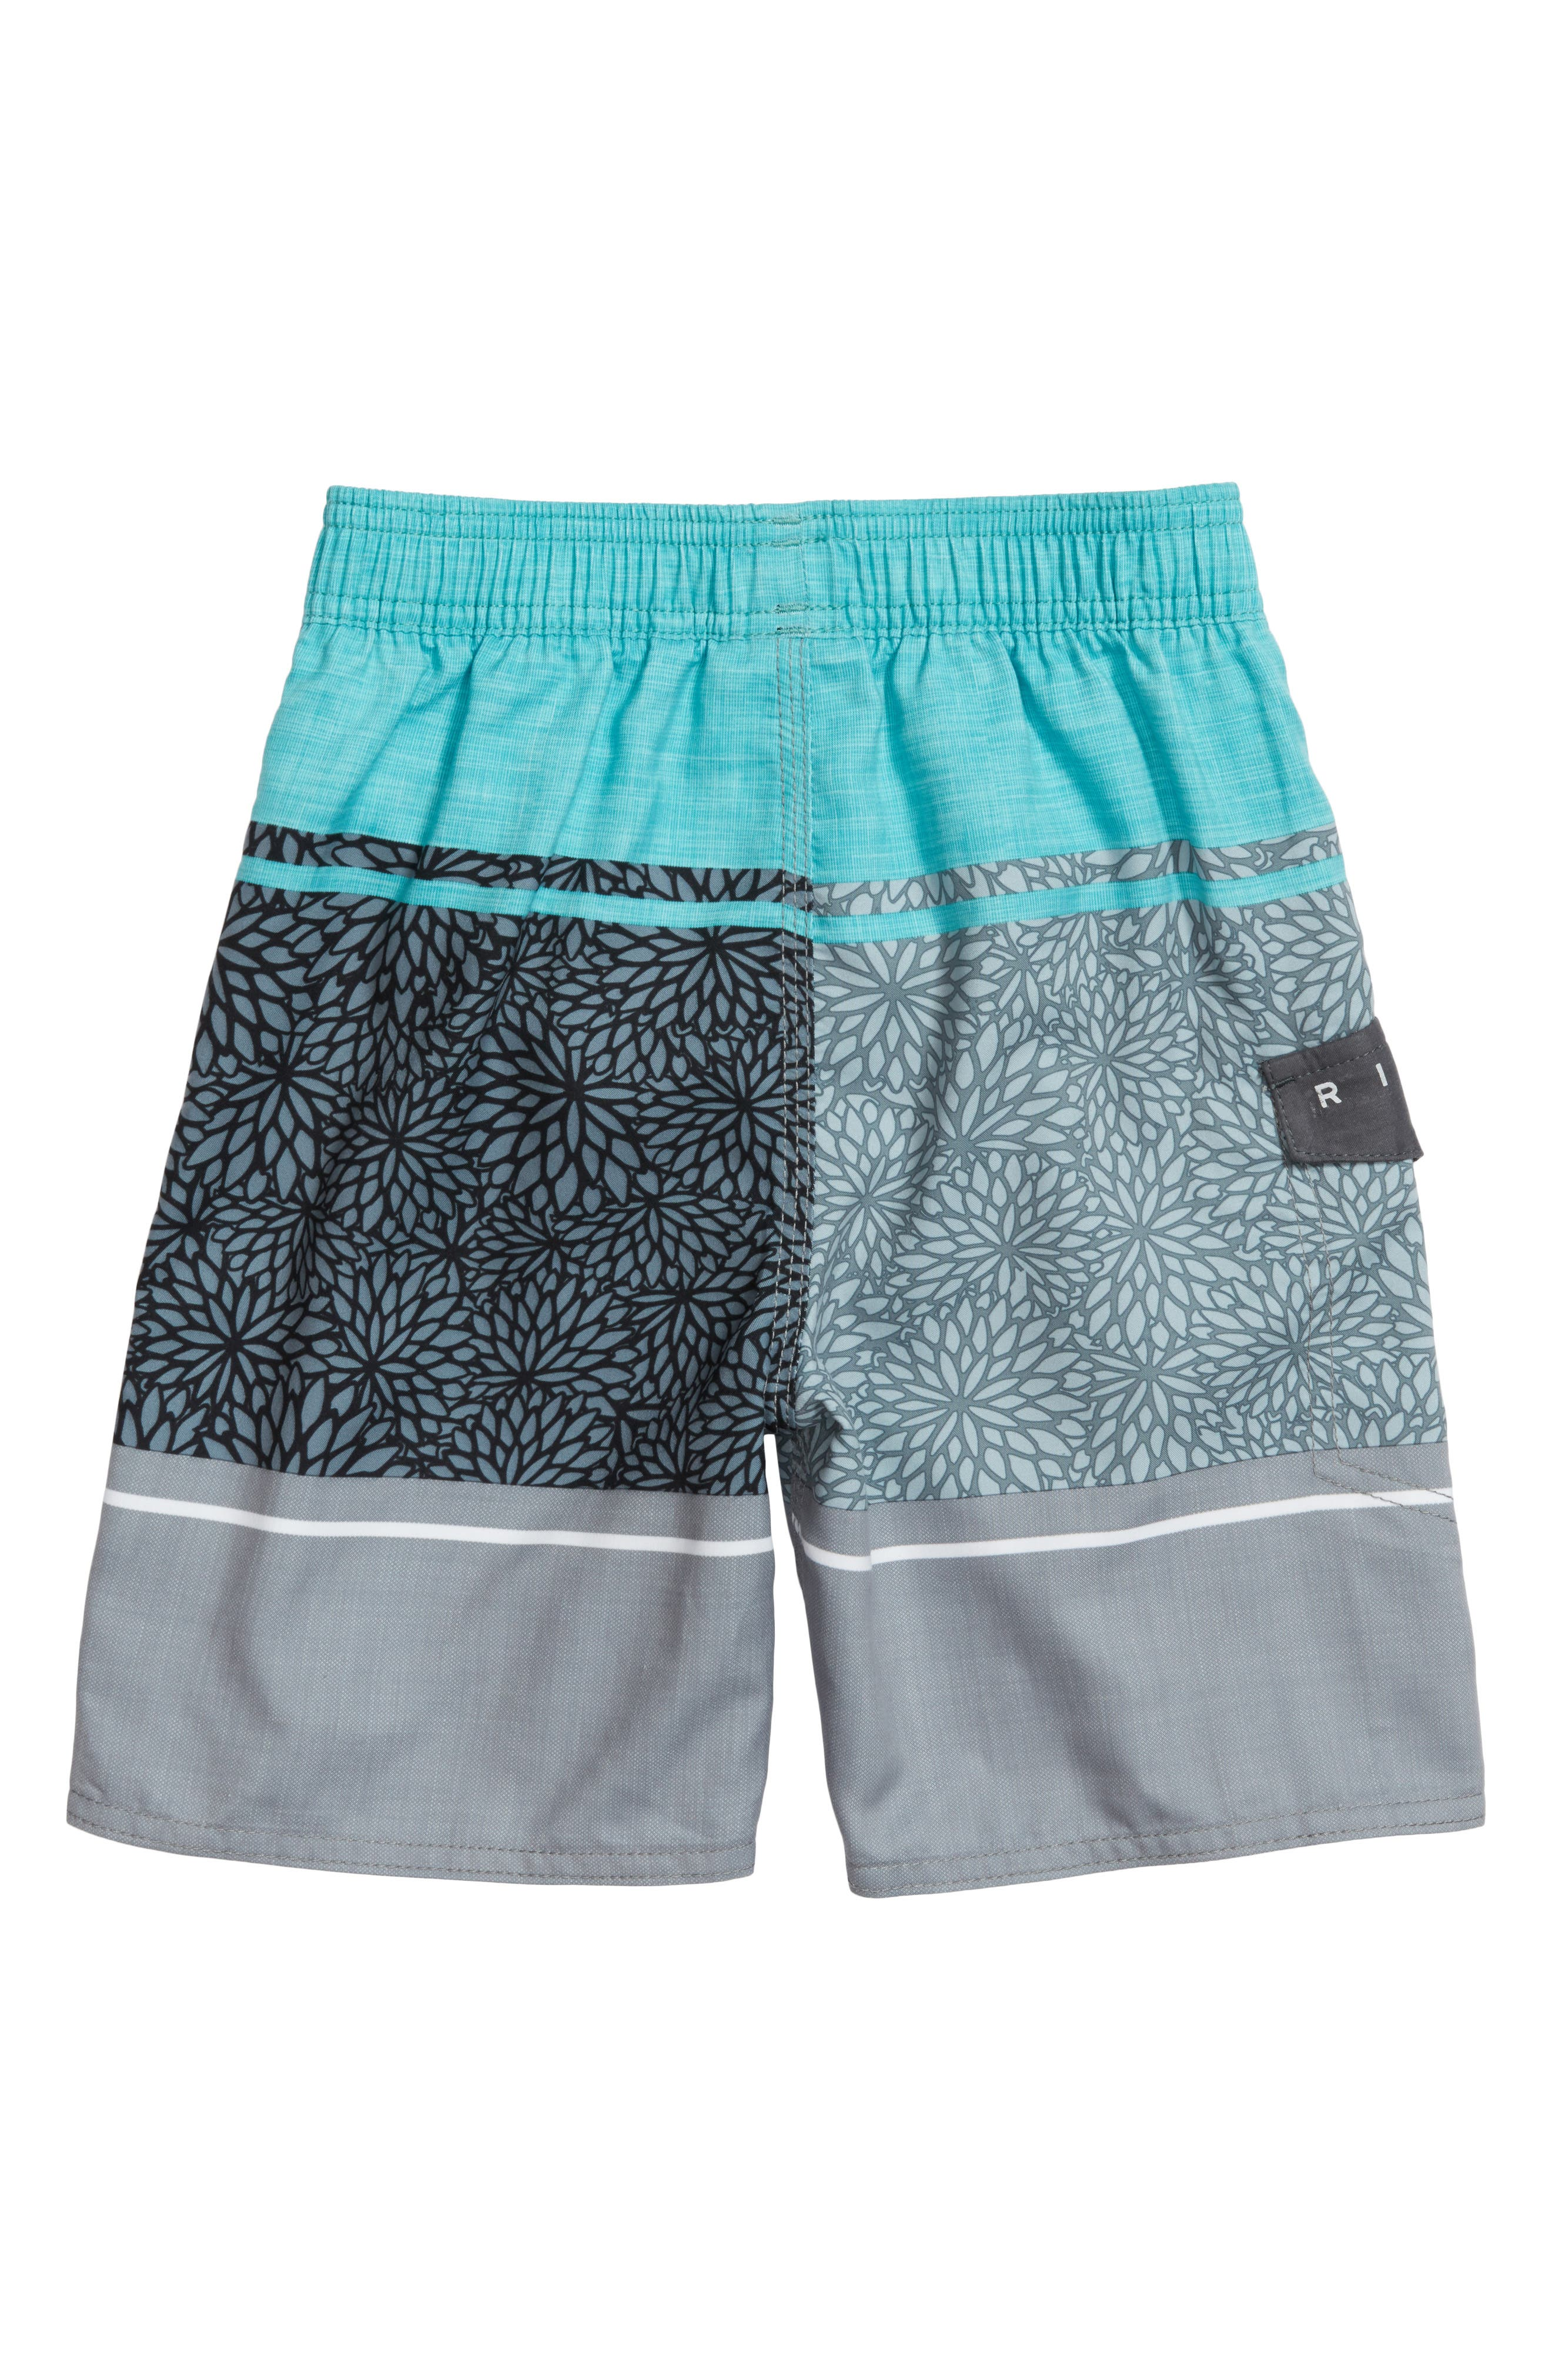 First Point Board Shorts,                             Alternate thumbnail 2, color,                             001